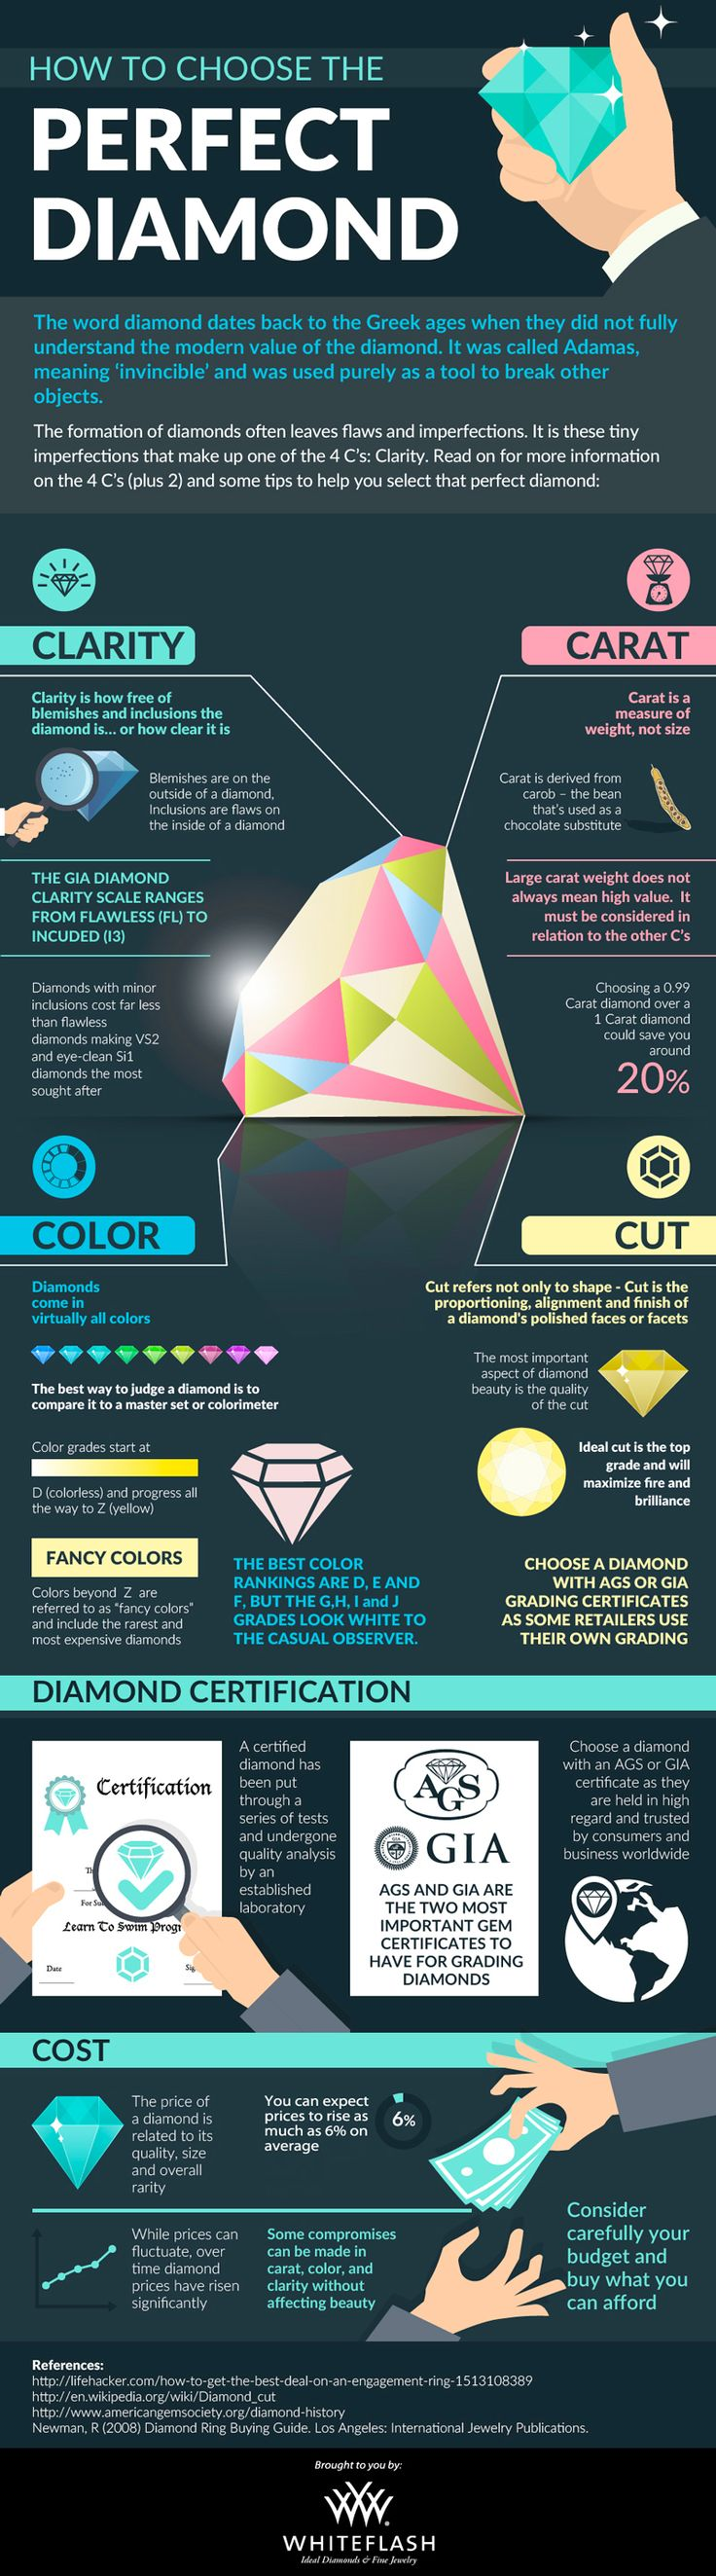 colour argyle of grading watermarking diamonds australia origin gems diamond pink chart